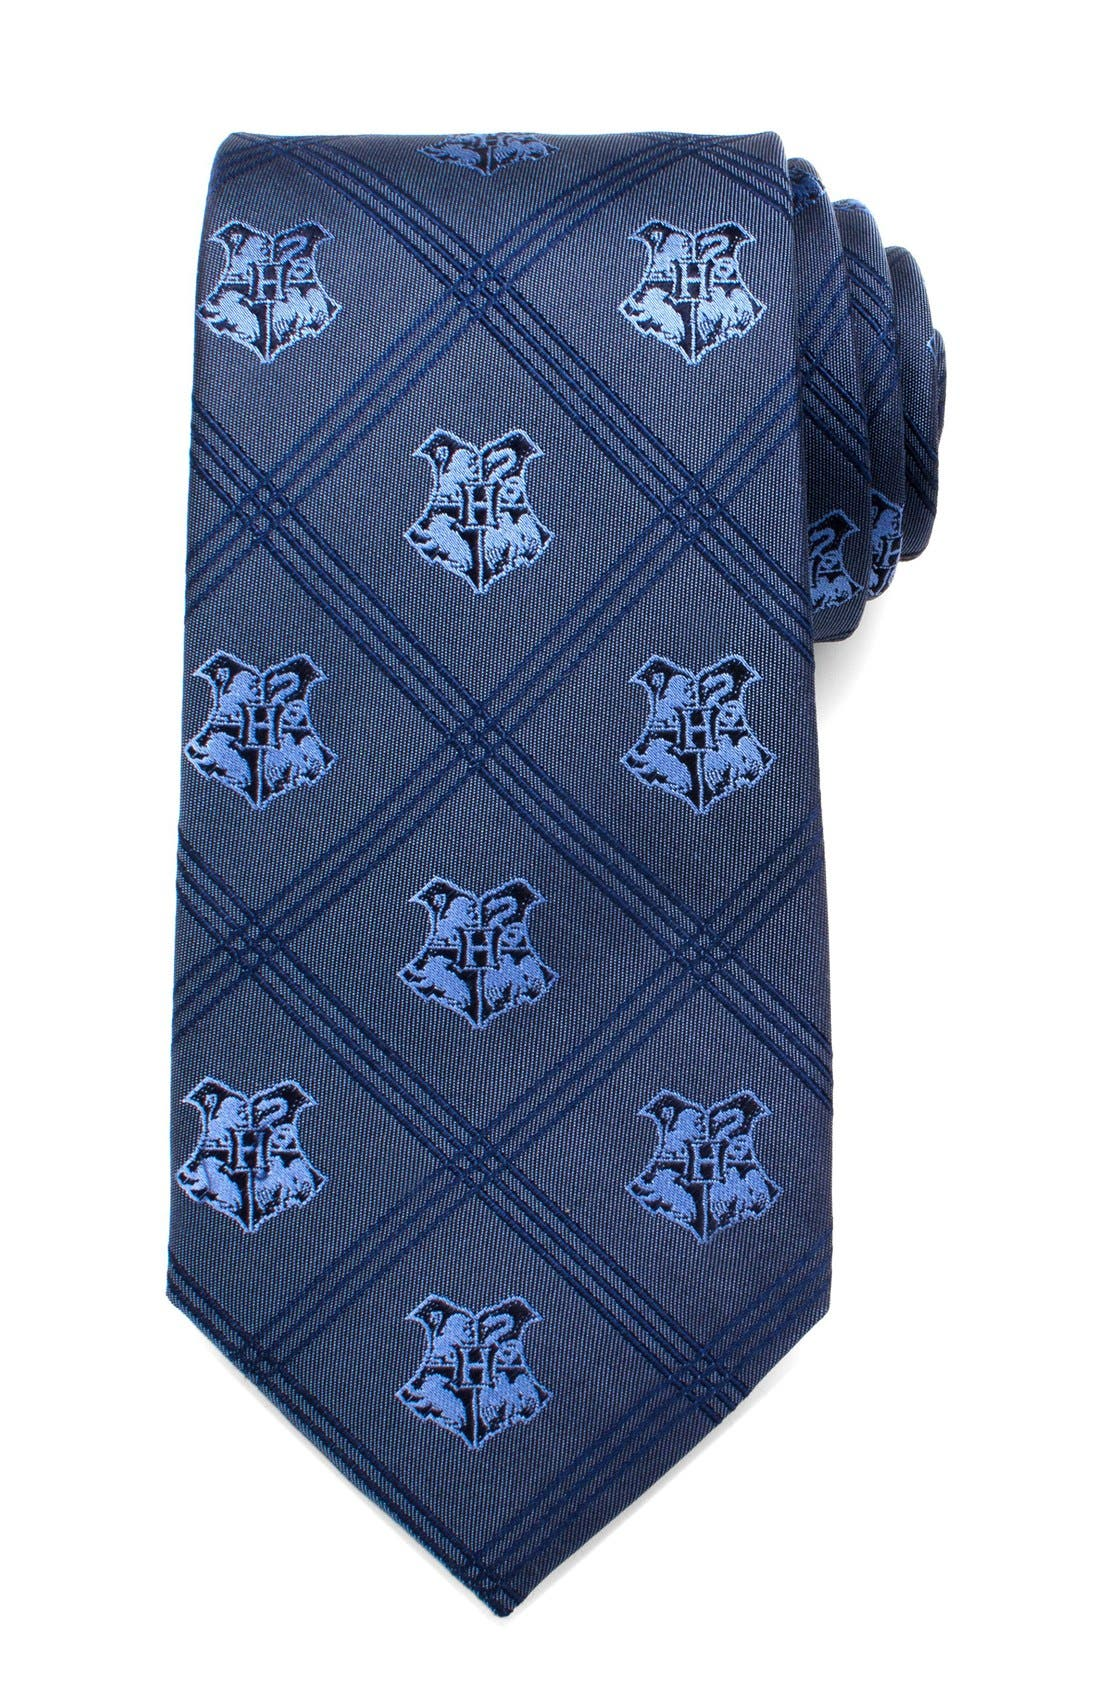 'Hogwarts' Silk Tie,                             Main thumbnail 1, color,                             Blue